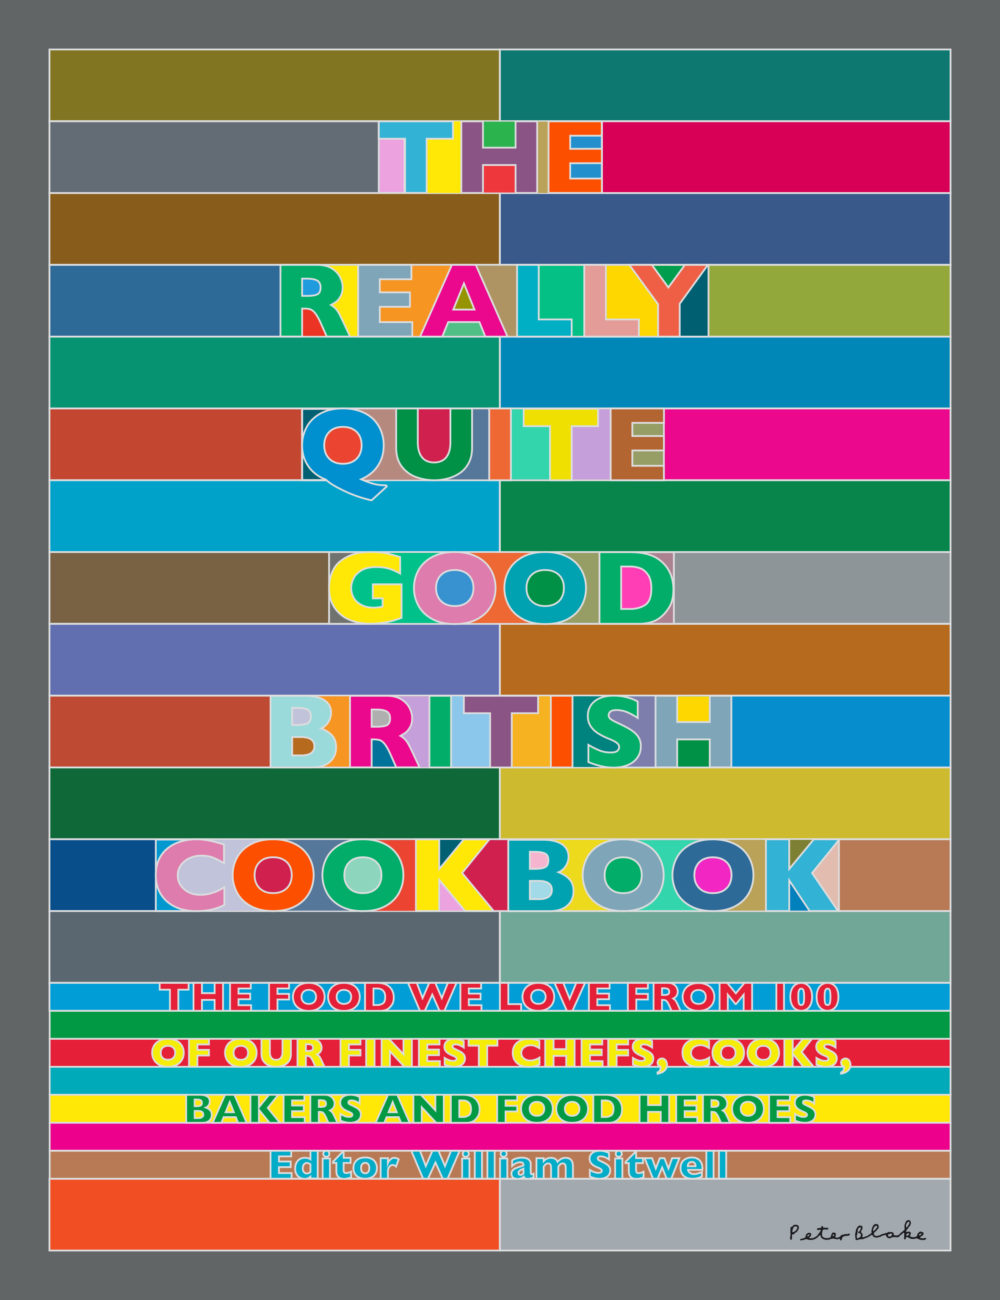 REALLY QUITE GOOD BRITISH COOKBOOK, THE